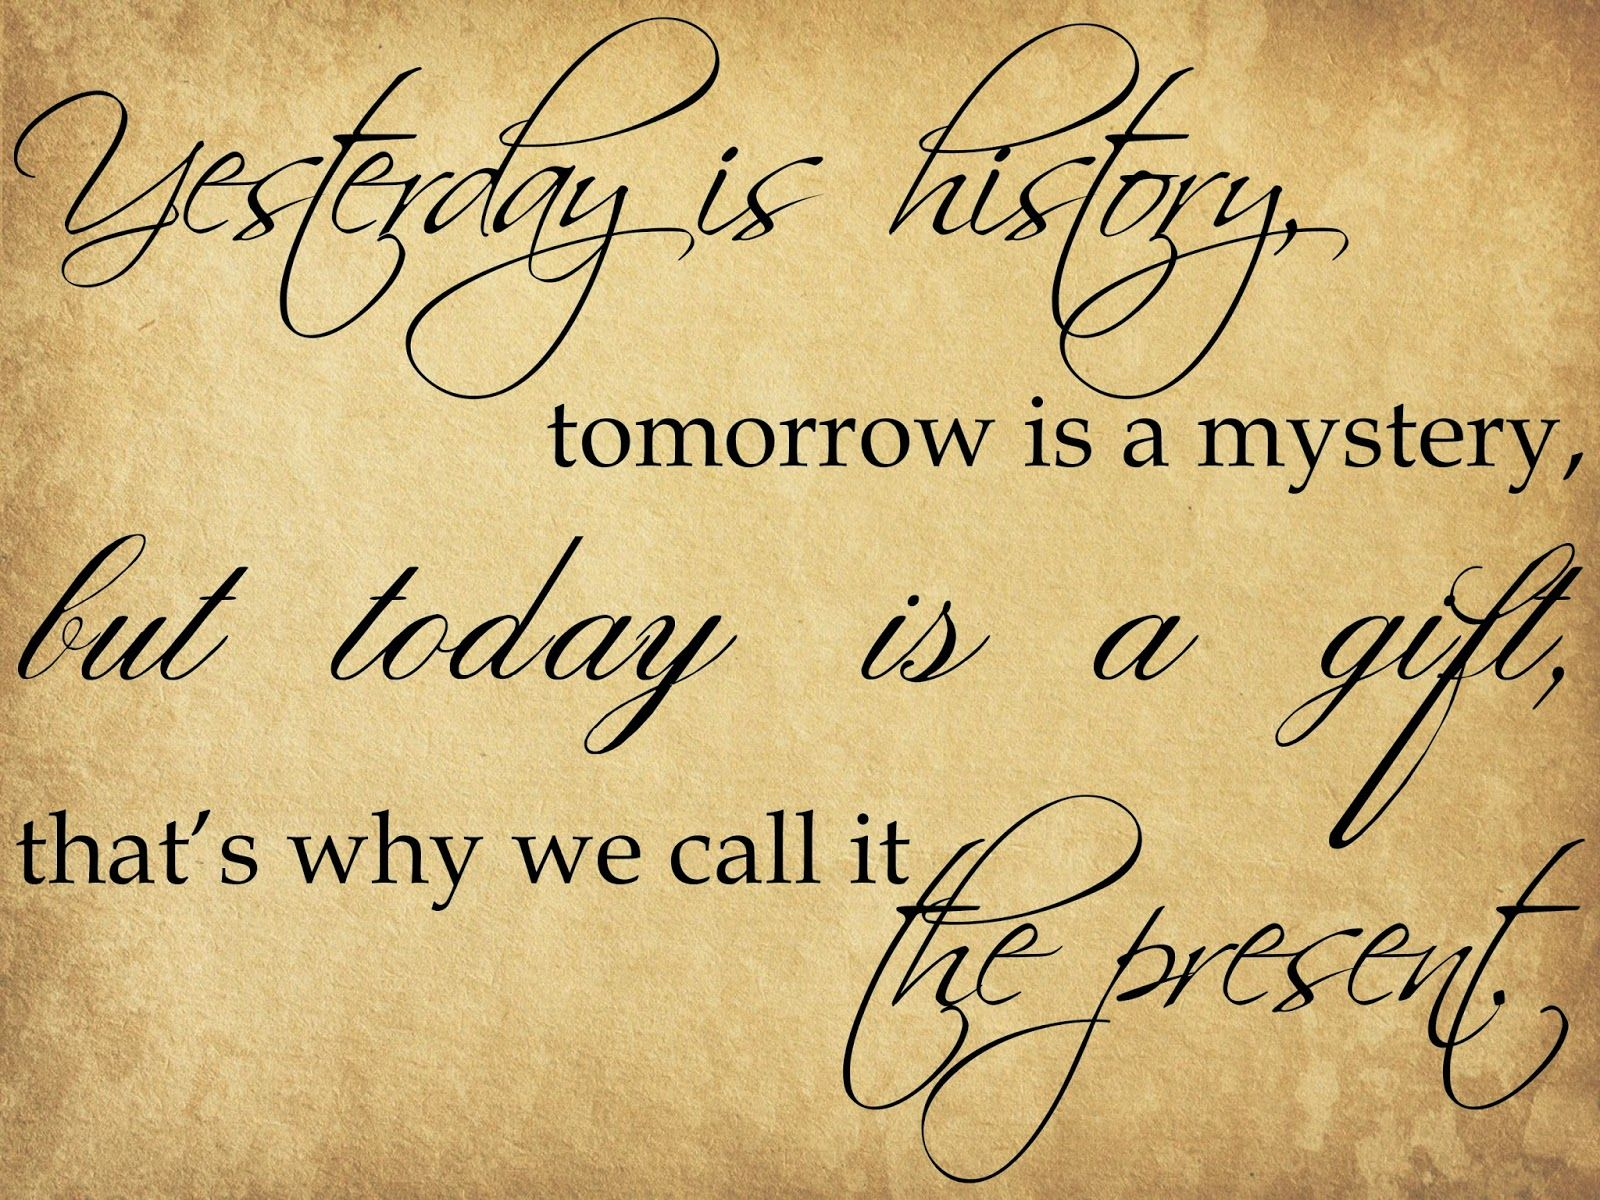 Yesterday Is History, Tomorrow Is A Mystery, But Today Is